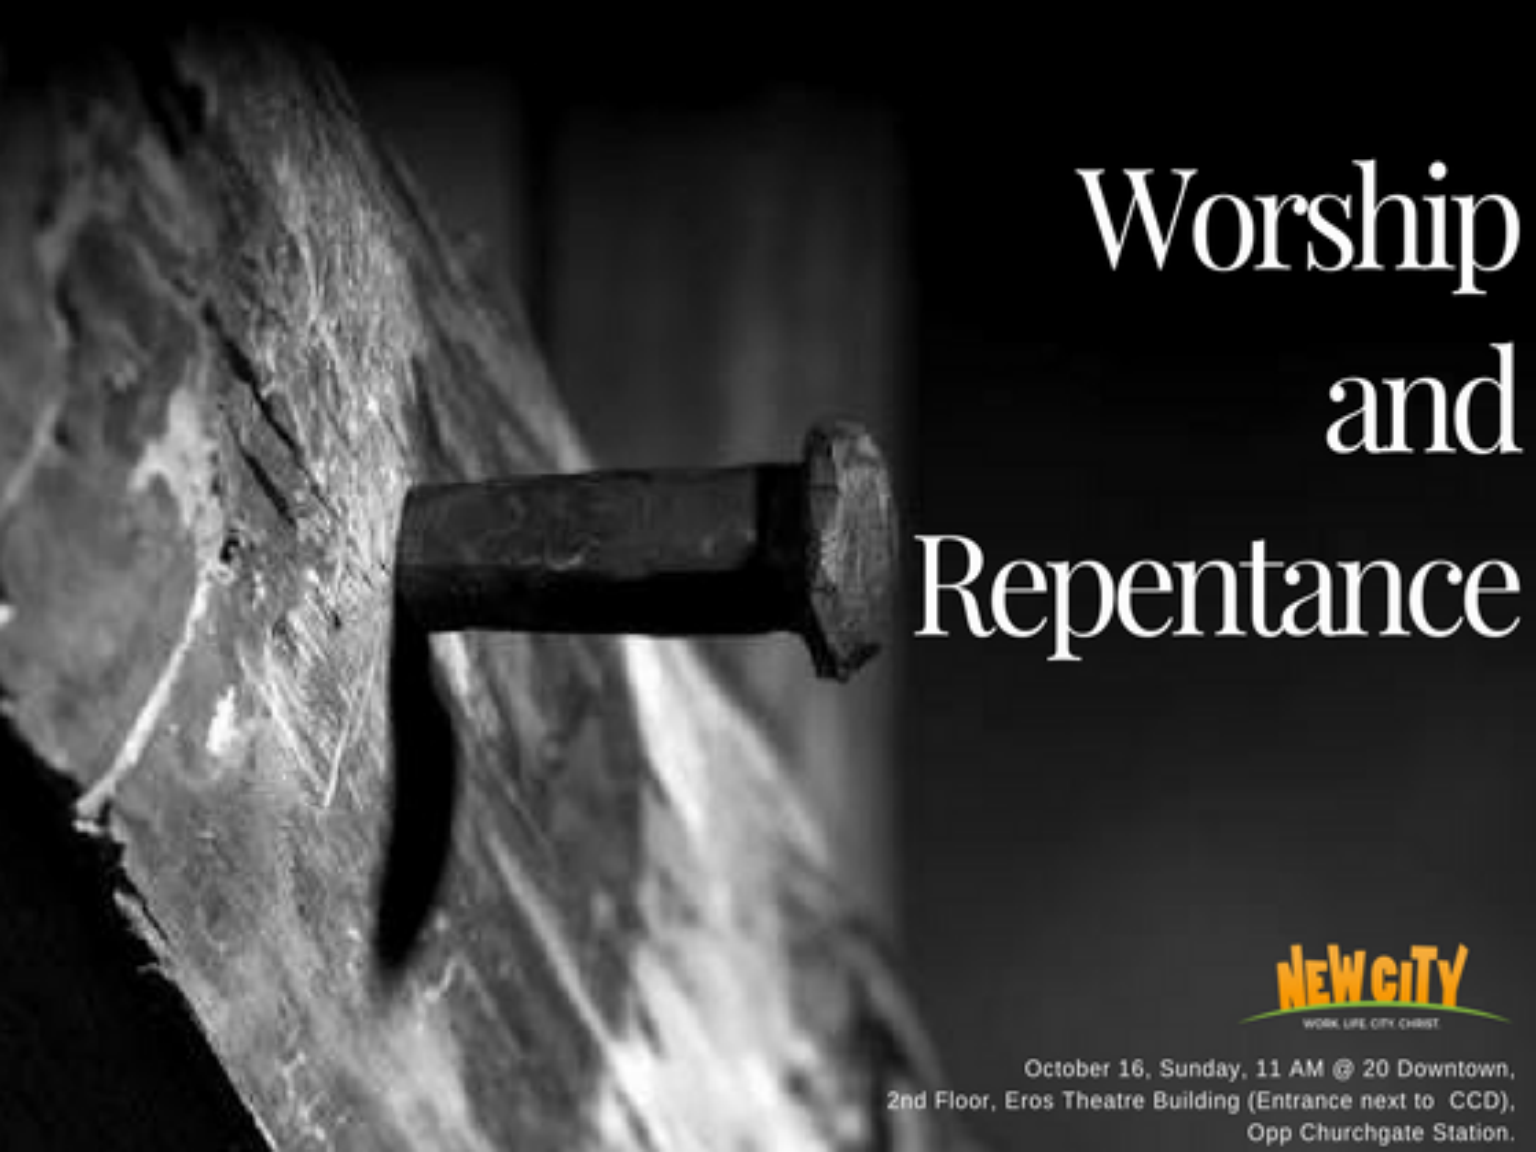 Worship and Repentance Image